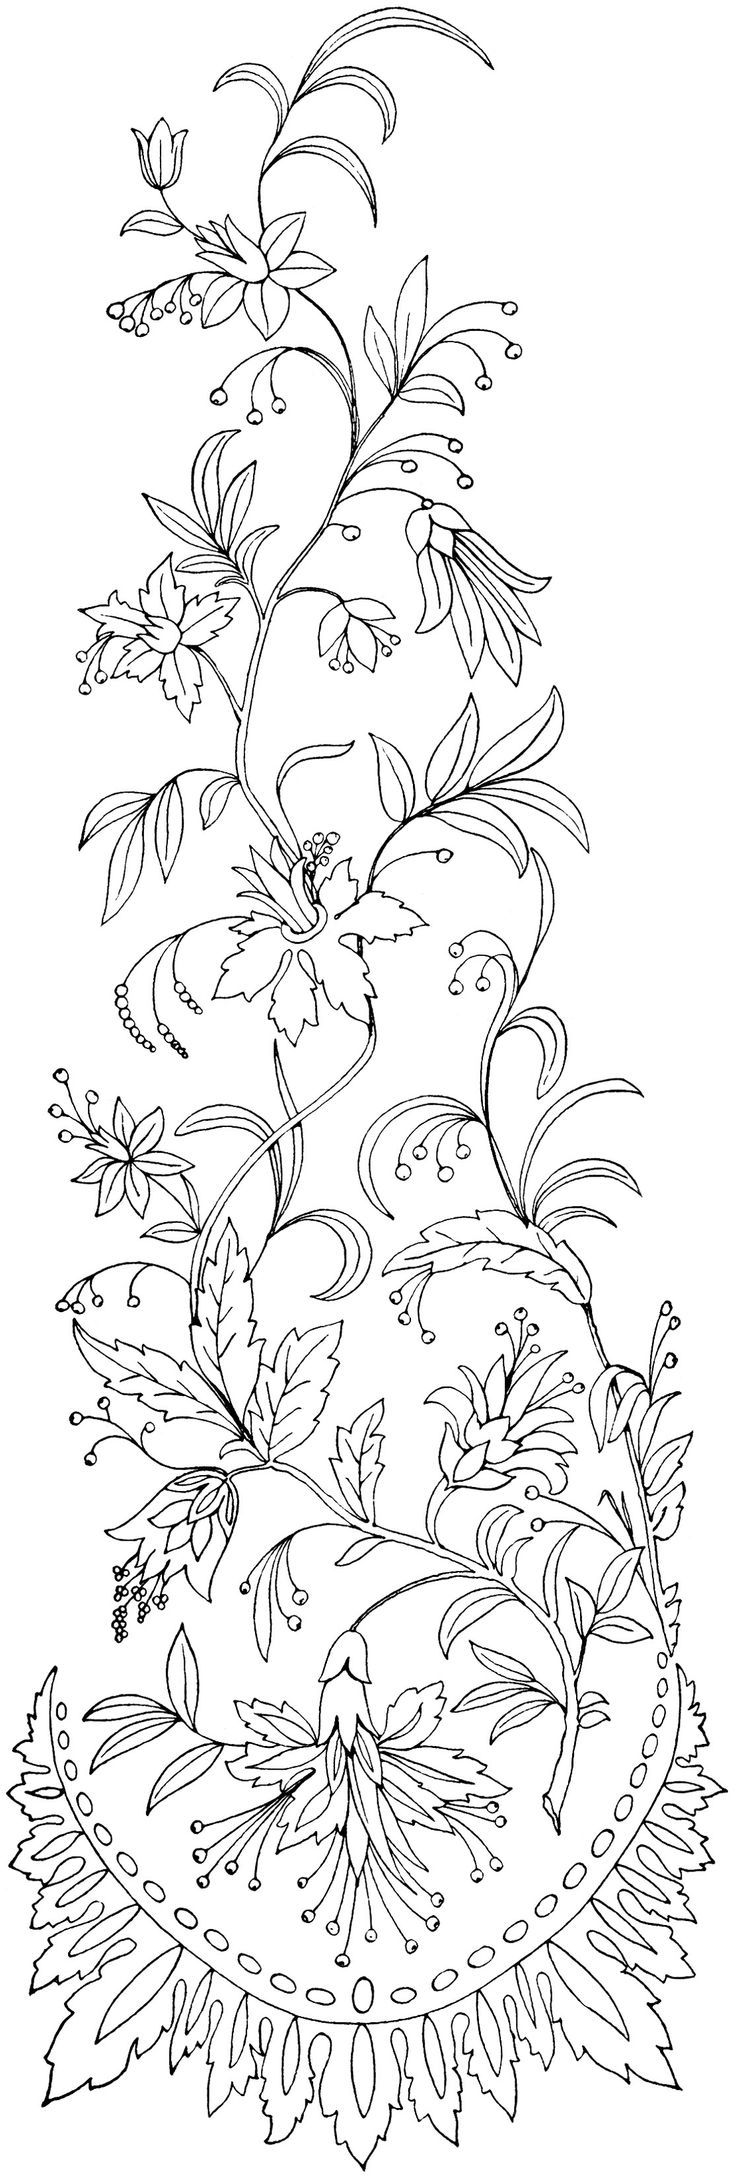 Free Printable Designs | This lovely vintage embroidery pattern of swirly flowers and leaves is ...